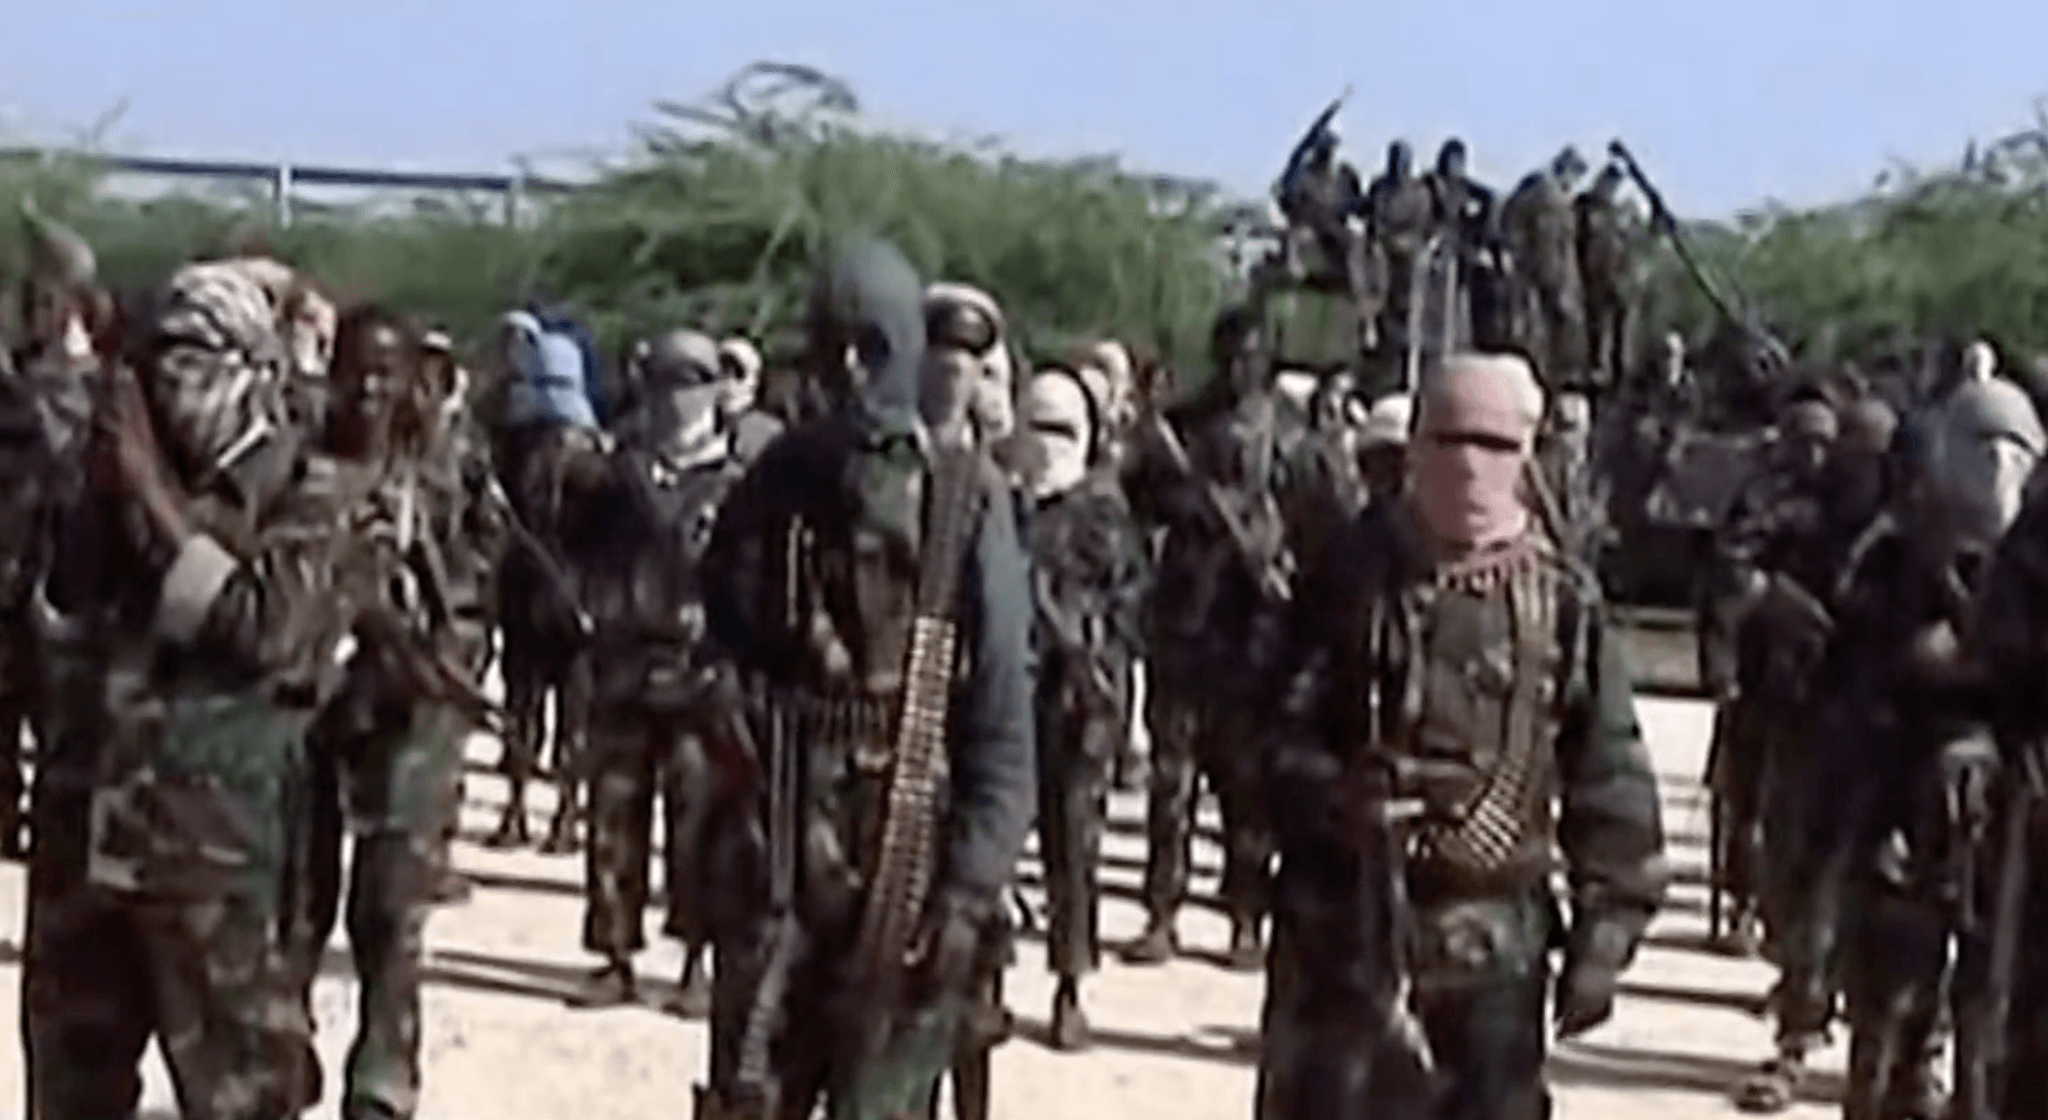 The Jihad In Kenya: Understanding Al-Shabaab Recruitment And Terrorist Activity Inside Kenya—in Their Own Words